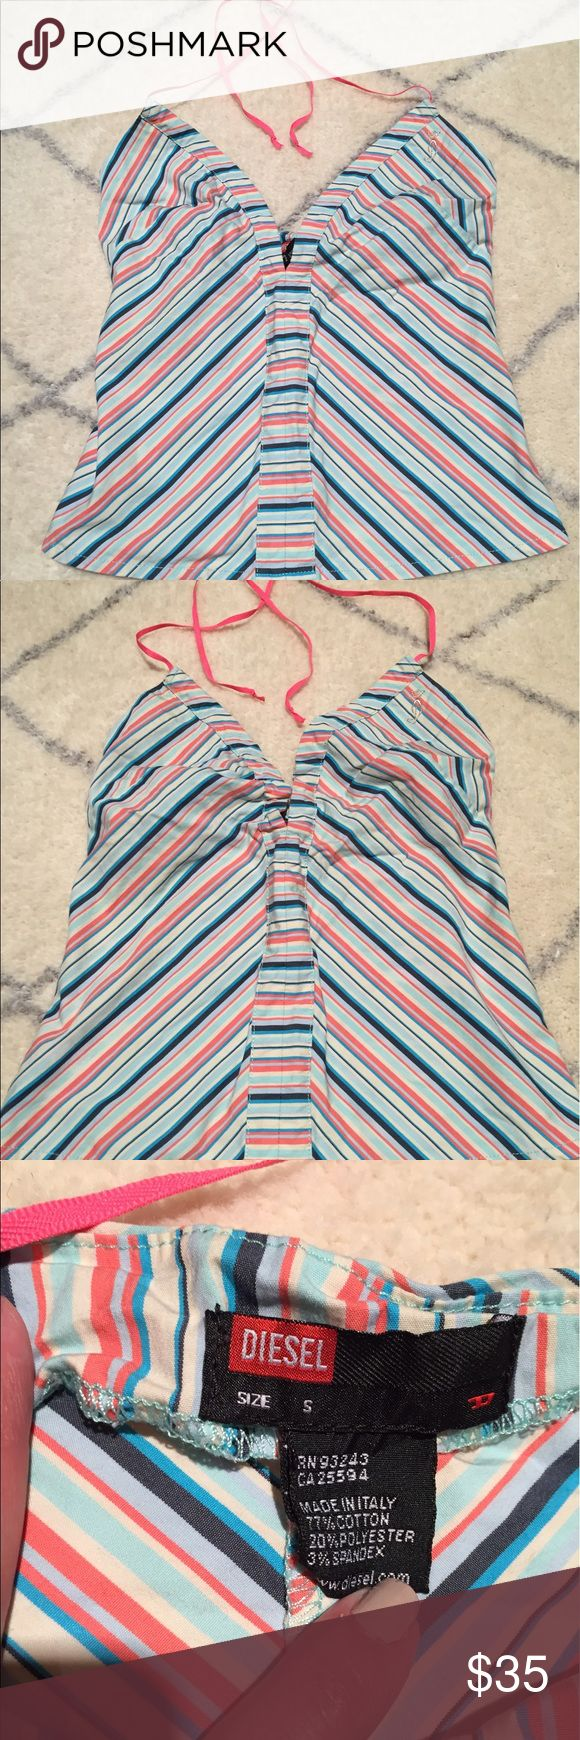 A Diesel Top A long time favorite top- bought it in Key West in a little boutique- instantly felt in love ❤️- perfect Summer top w jeans 👖 Diesel Tops Blouses